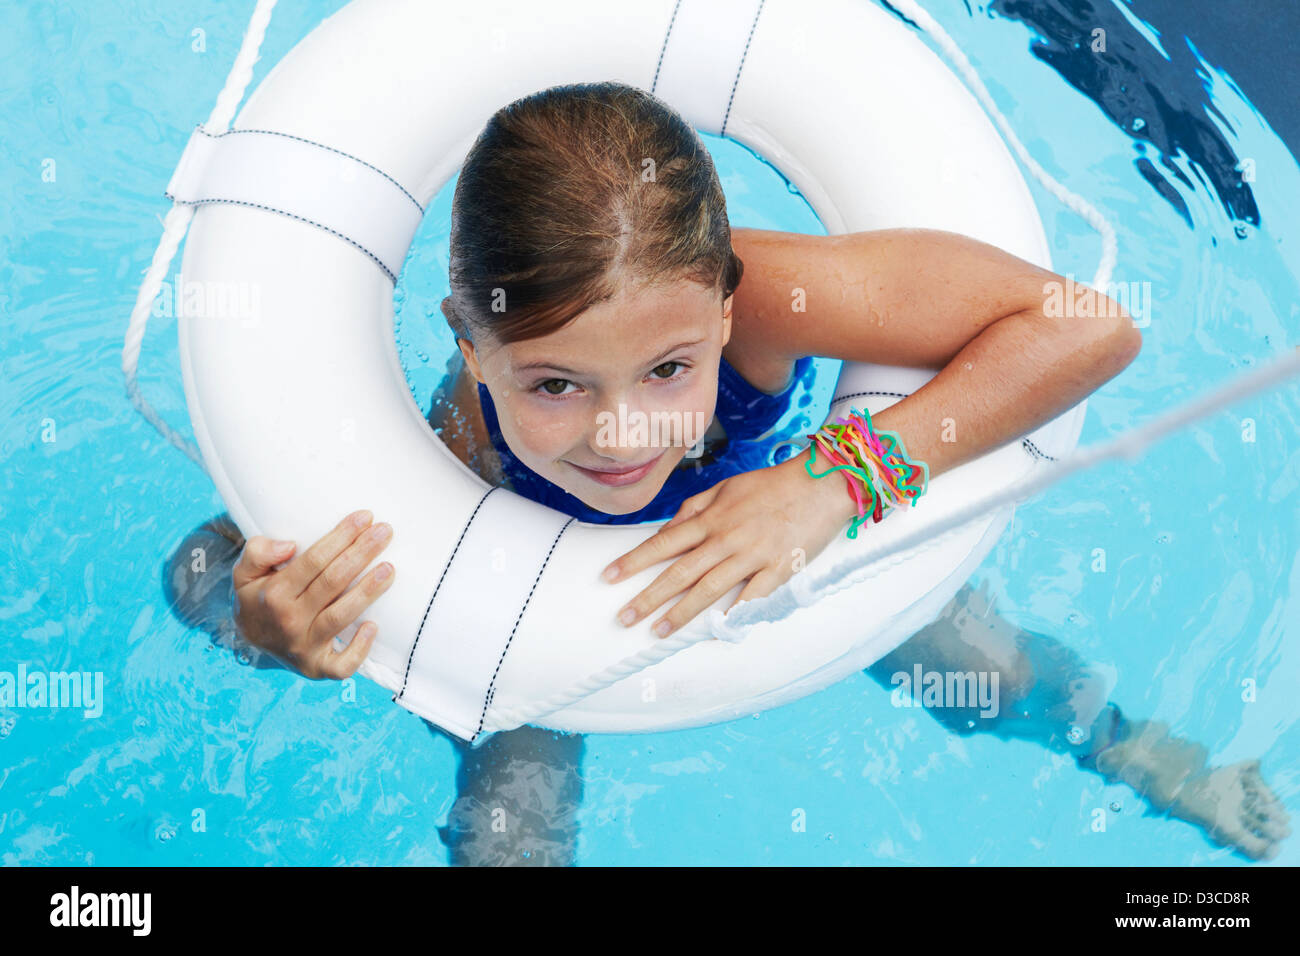 7 year old girl swimming in pool with life preserver - Stock Image